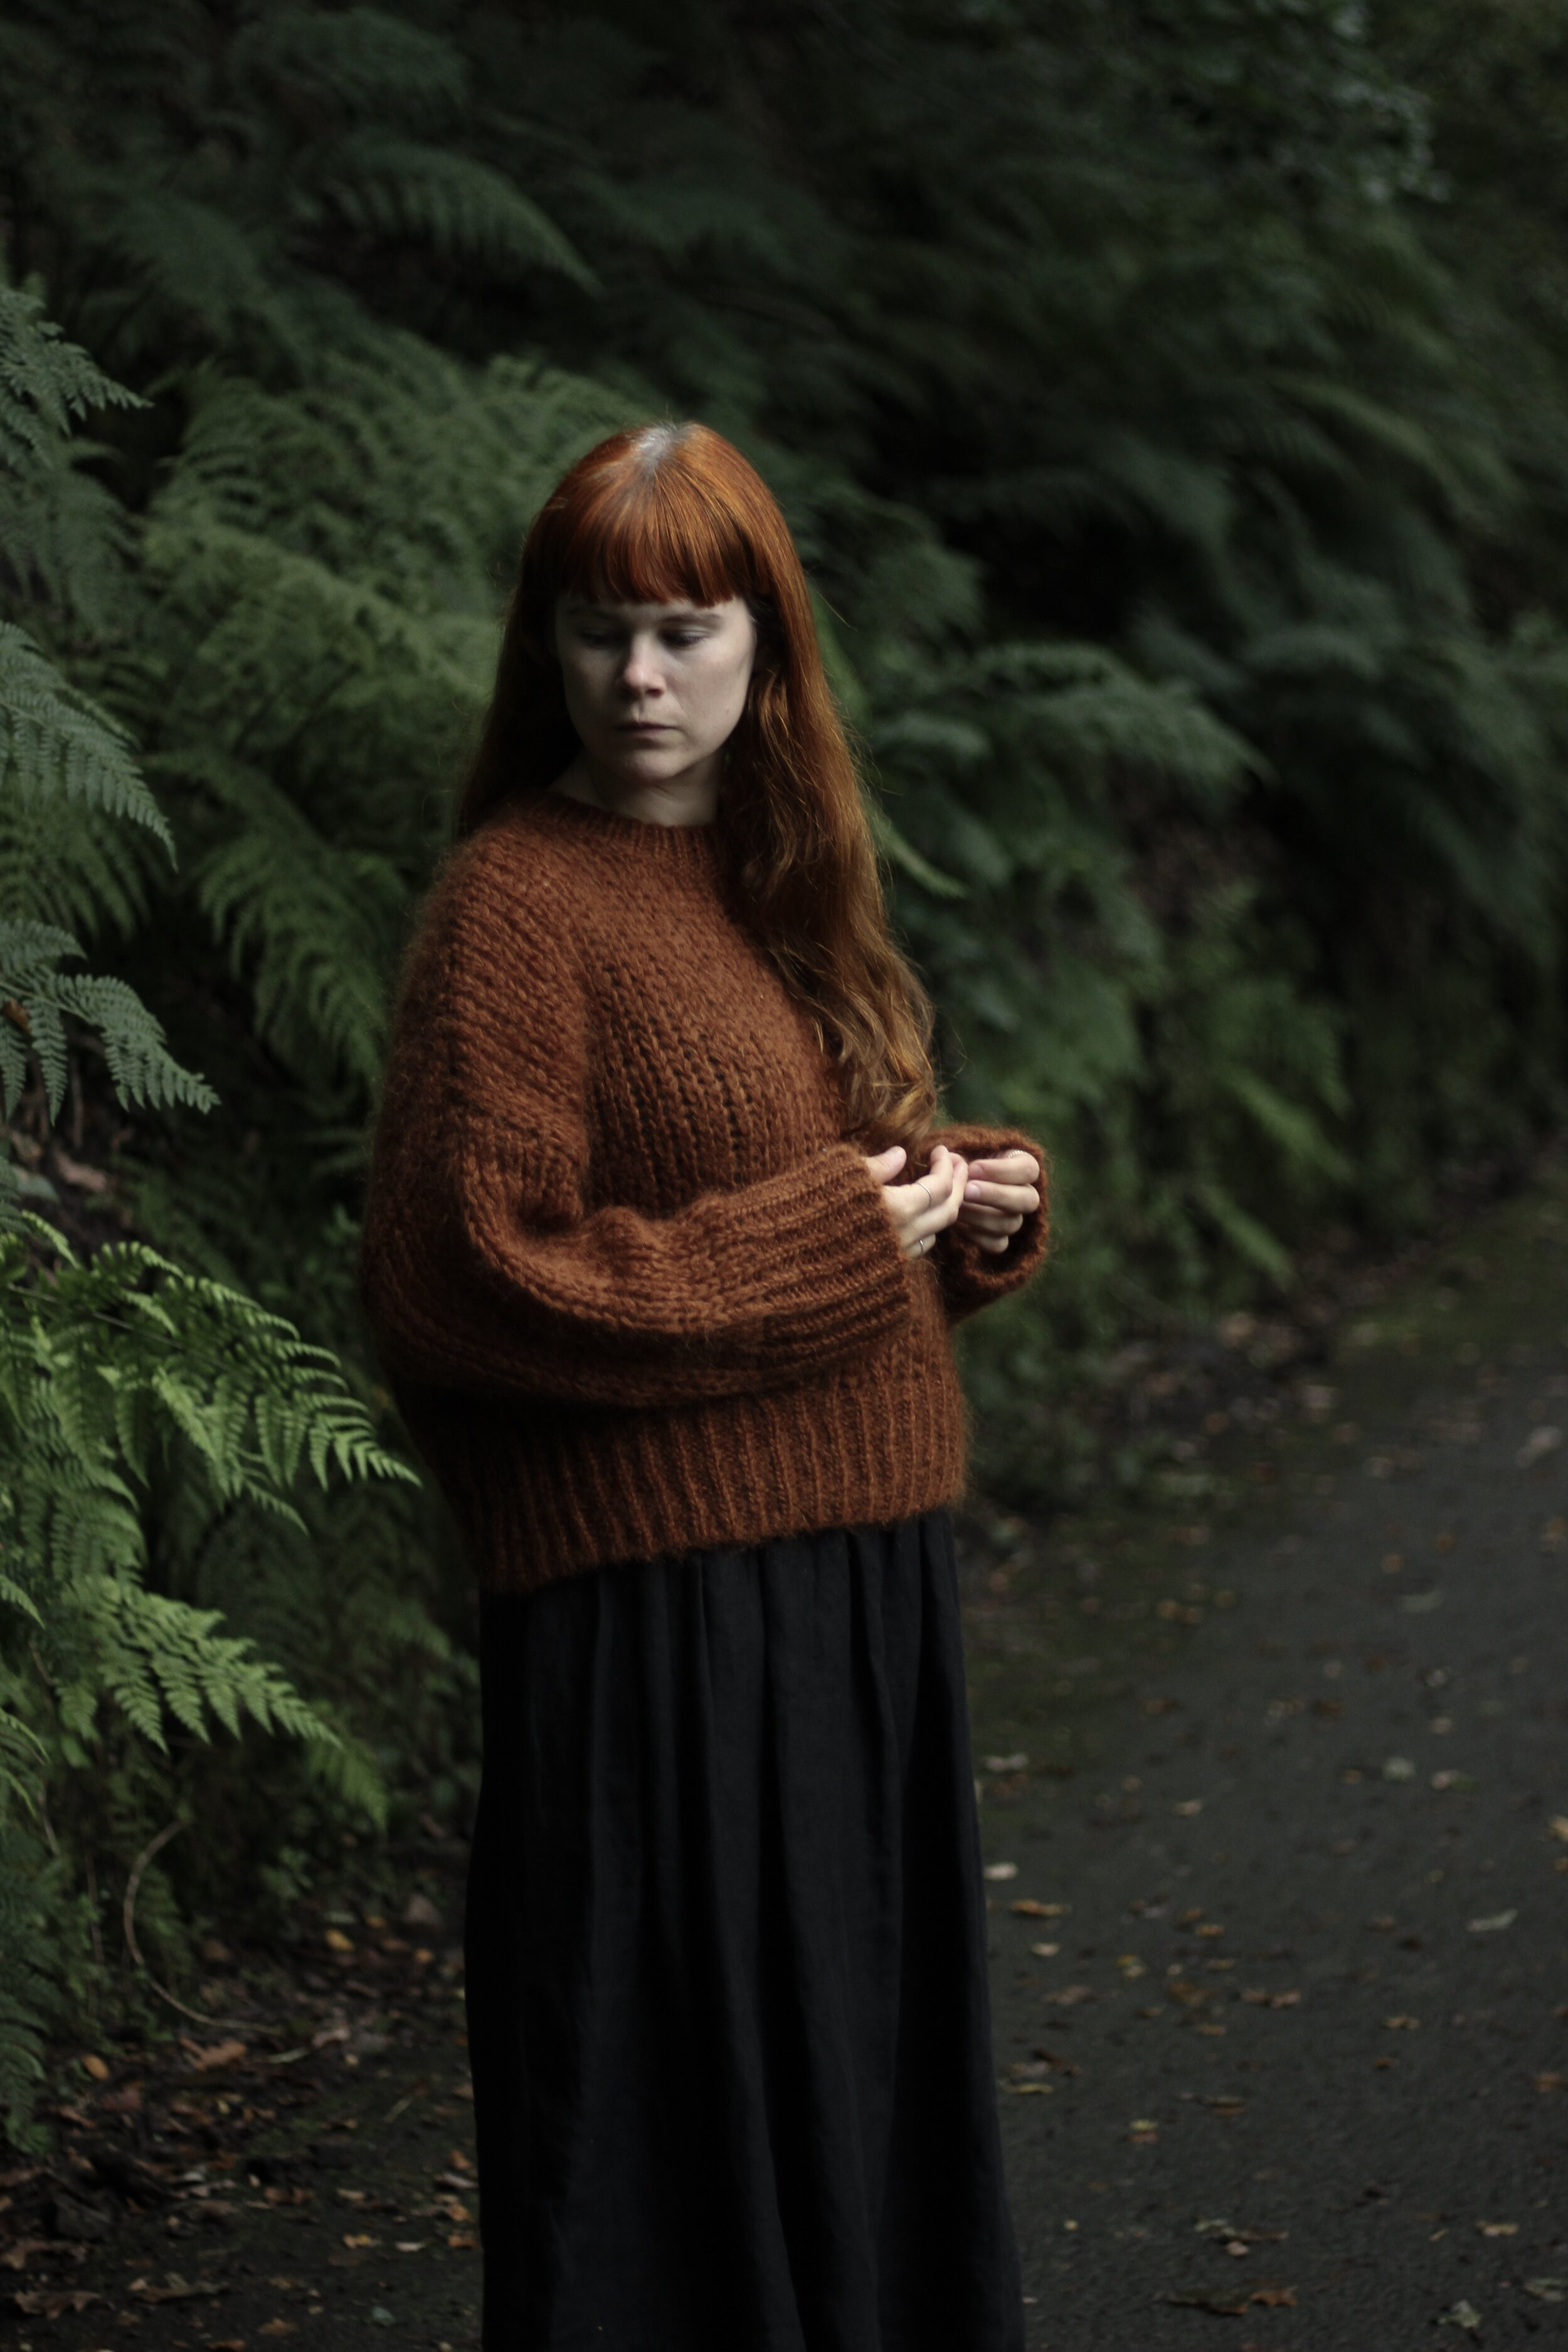 Autumn Style, Girl in Forest | Field + Nest